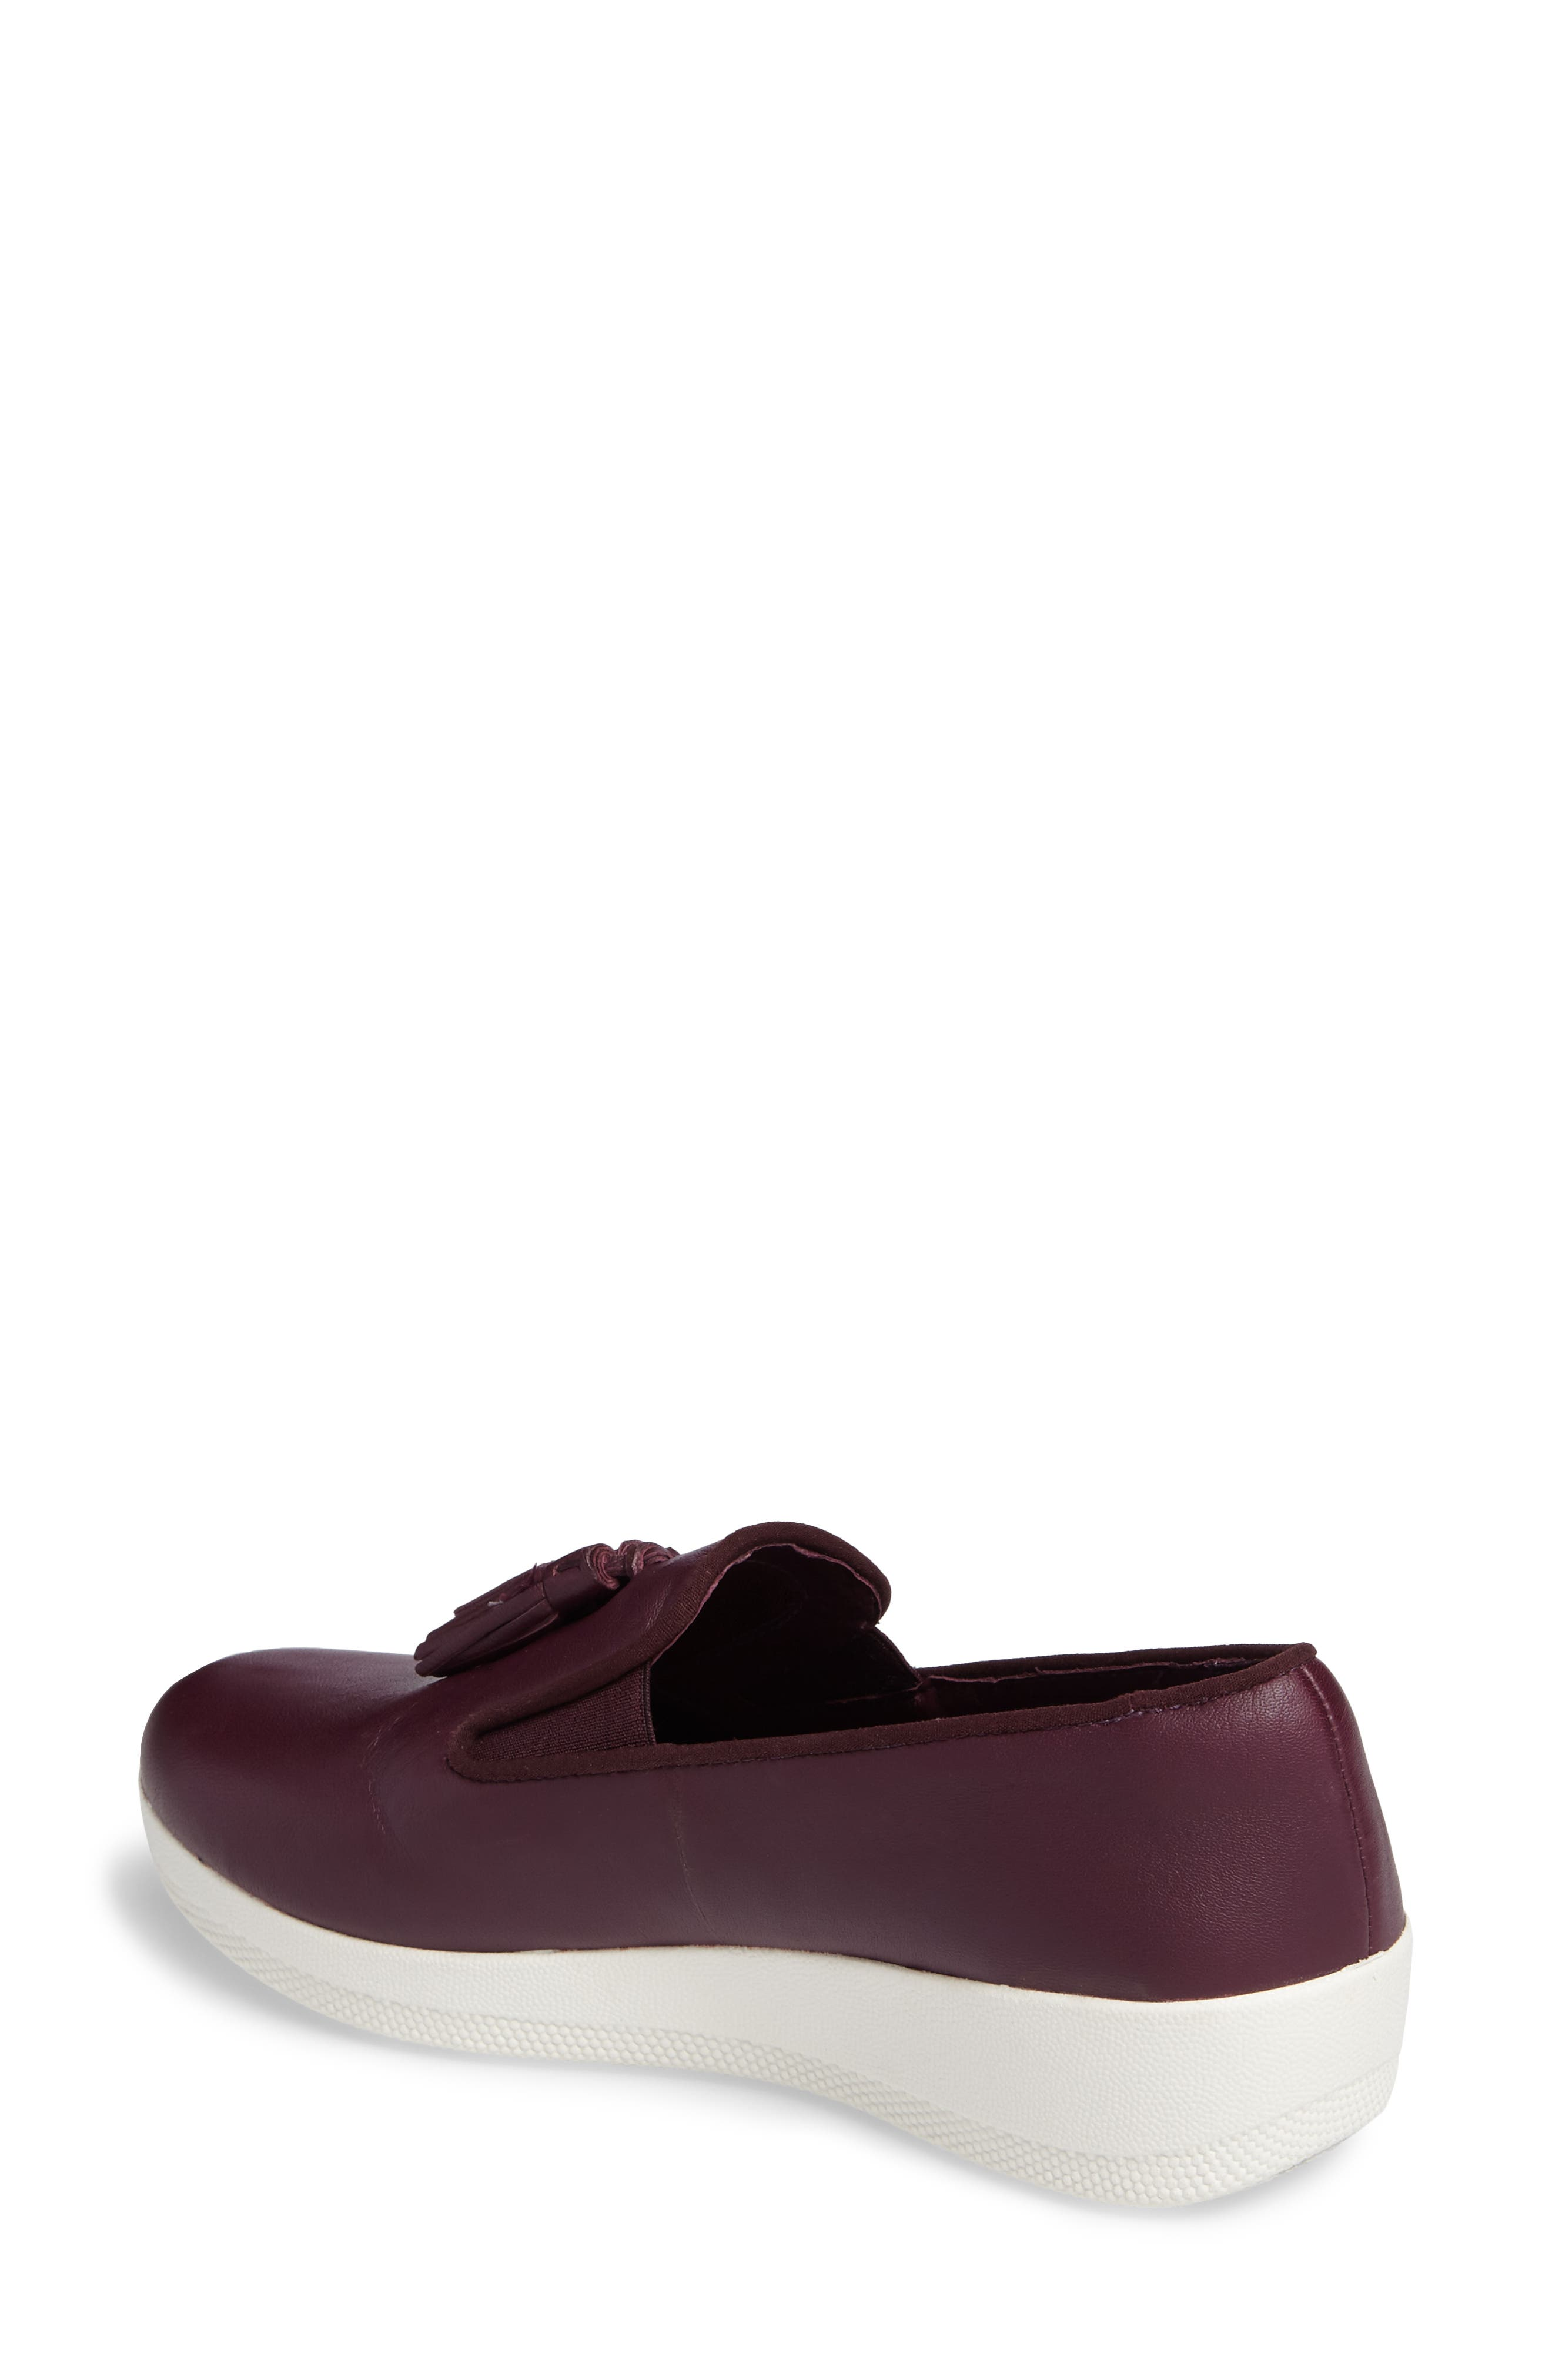 Tassle Superskate Wedge Sneaker,                             Alternate thumbnail 2, color,                             Deep Plum Leather